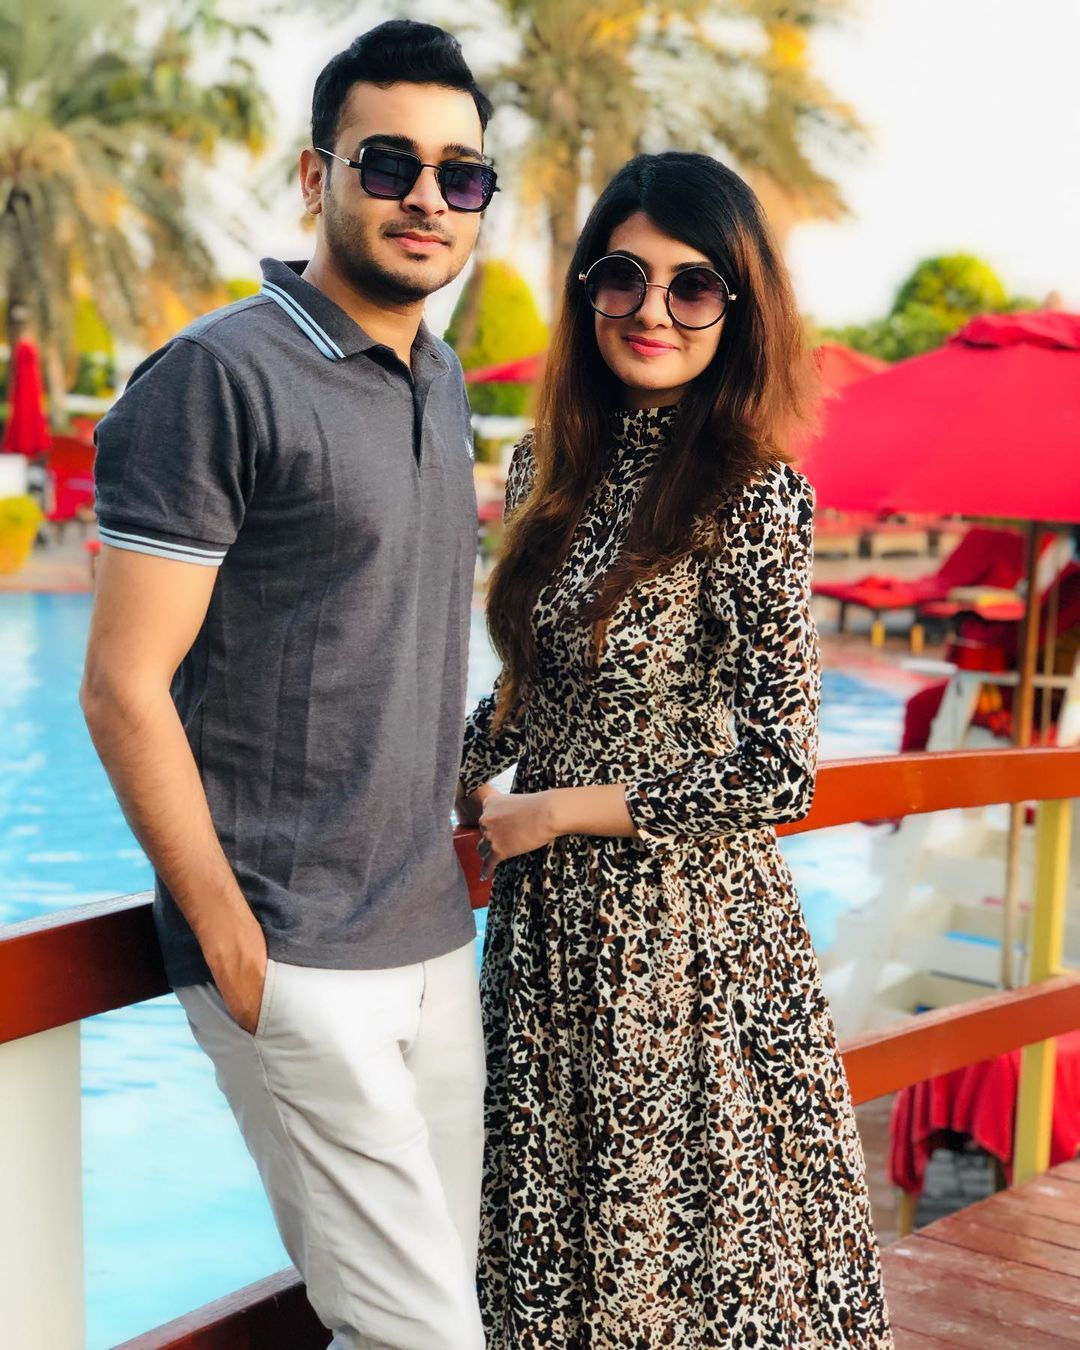 Alizeh Tahir with her Husband in Abu Dhabi - Beautiful Pictures